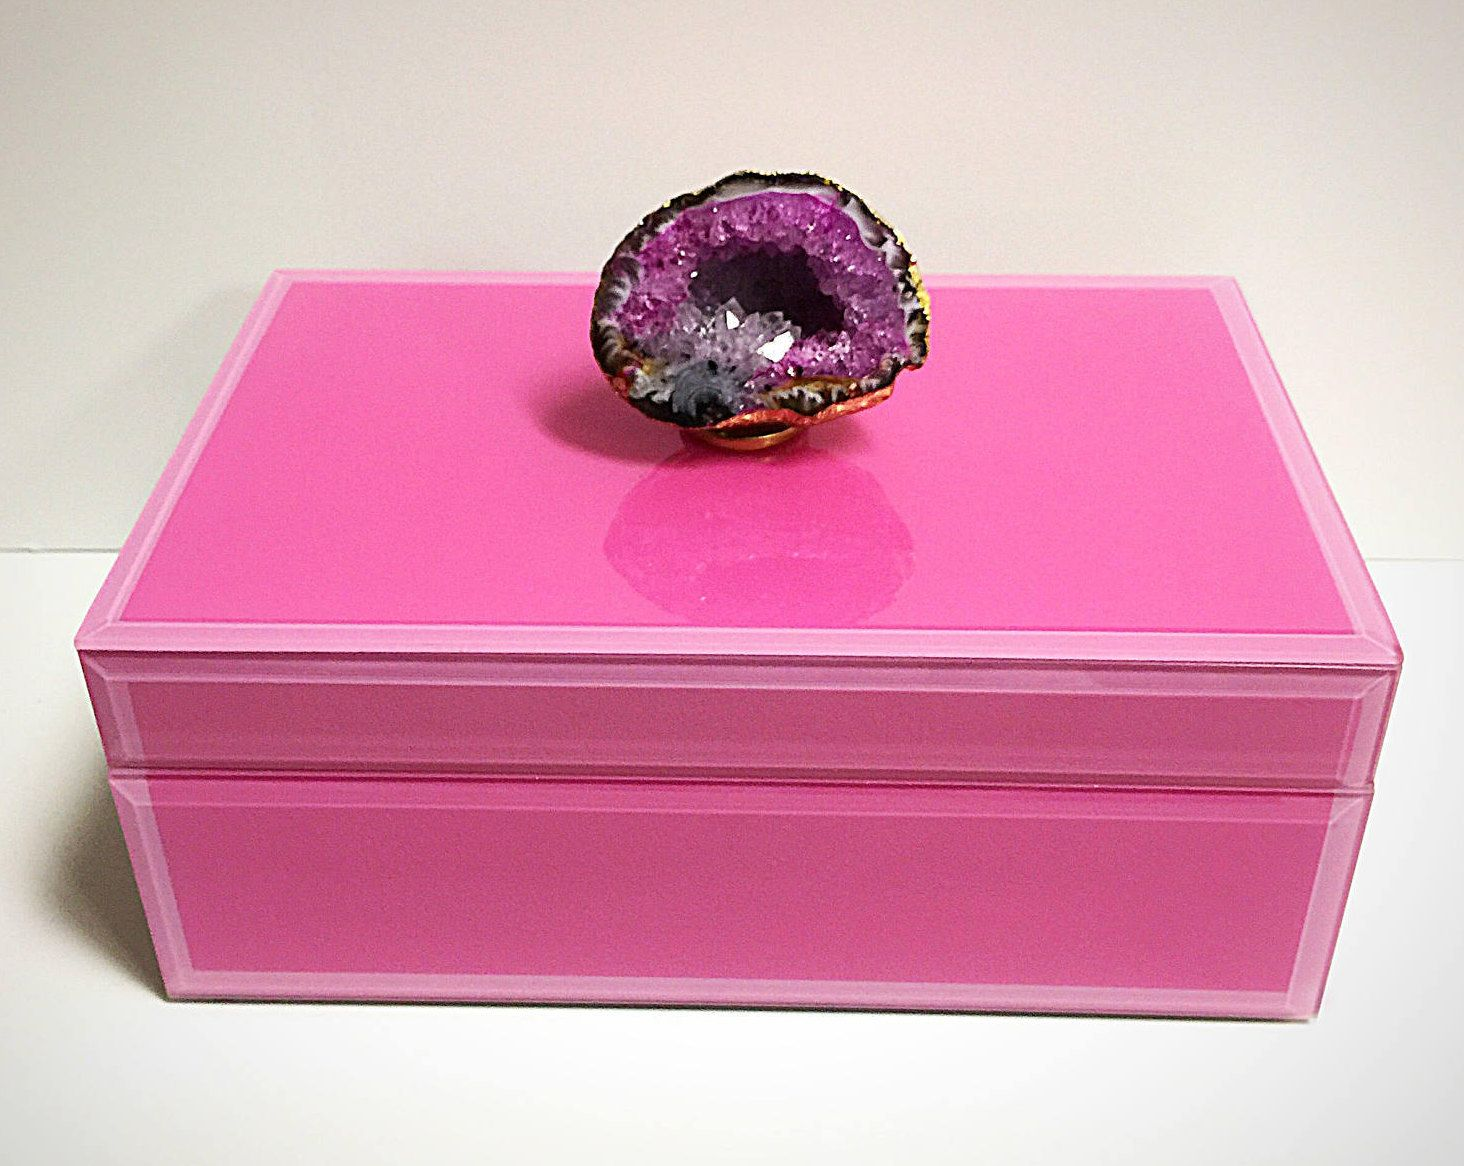 Pink Crystal Geode jewelry box, Geode Box, Pink Box, Pink Geode, Geode Decor,Pink Jewelry Box,Remote Box,Geode Jewelry Box,Home Décor,OOAK by CsDezigns on Etsy